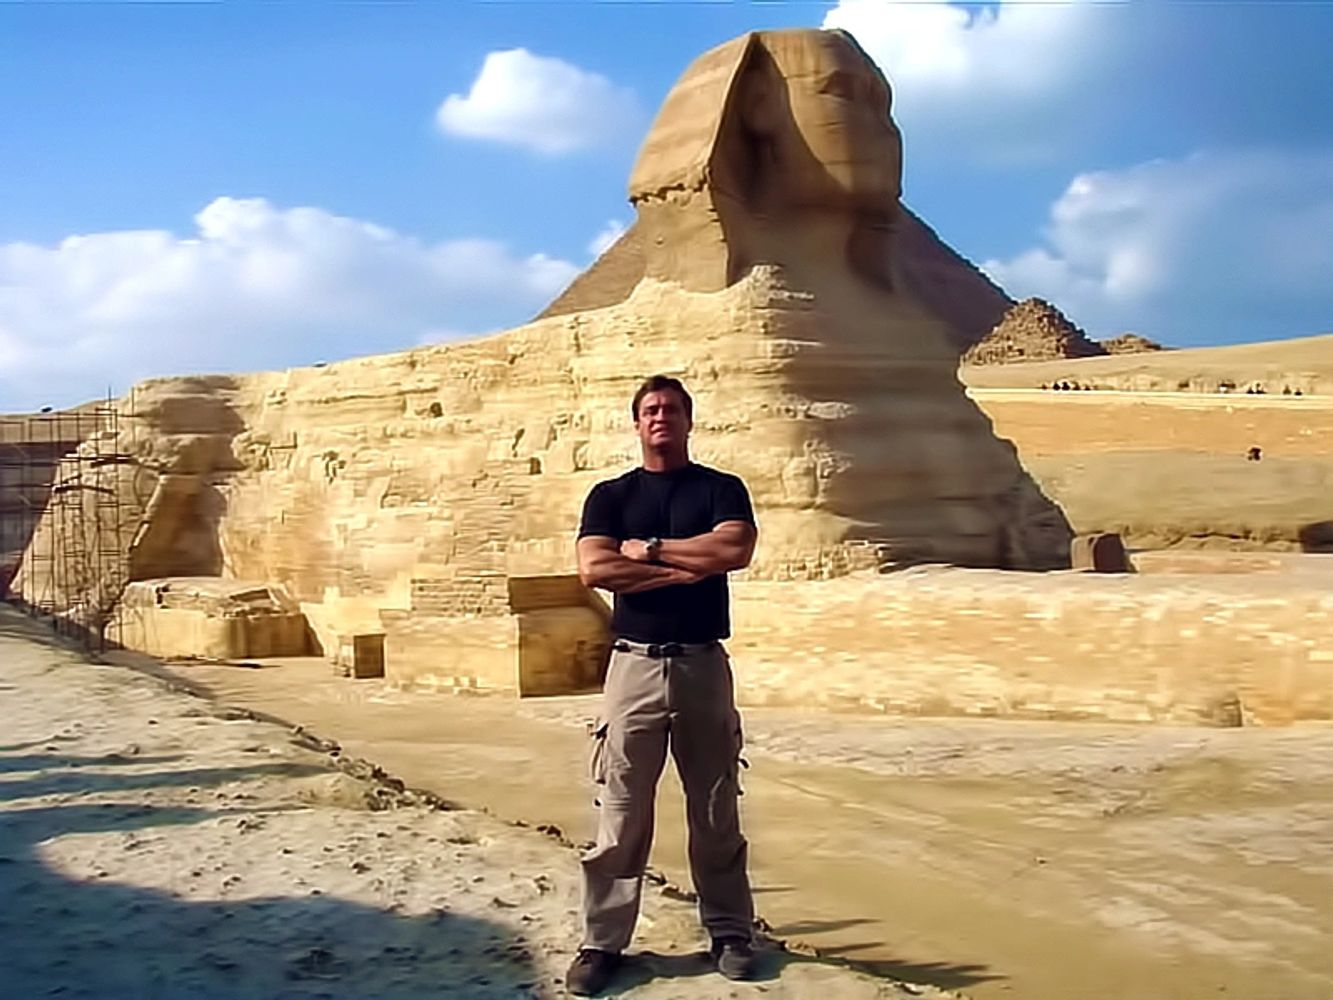 bradley-williamson-explorer-archaeologist-egypt-pyramids-treasure-hunter